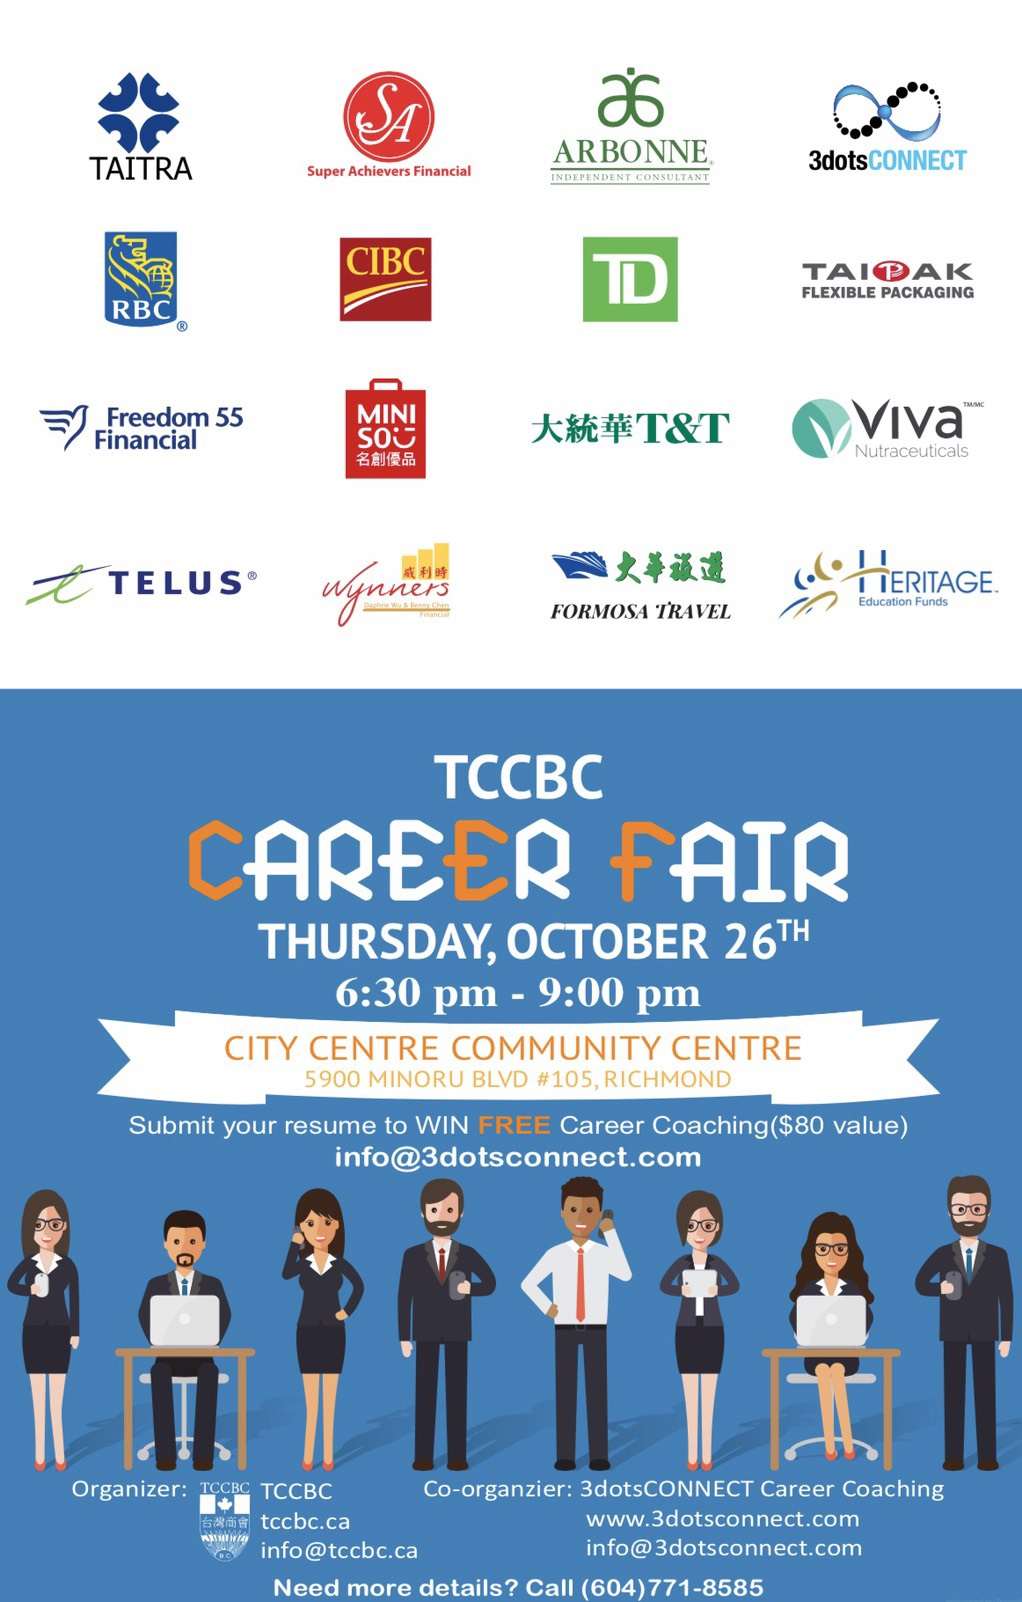 TCCBC 2017 Career Fair